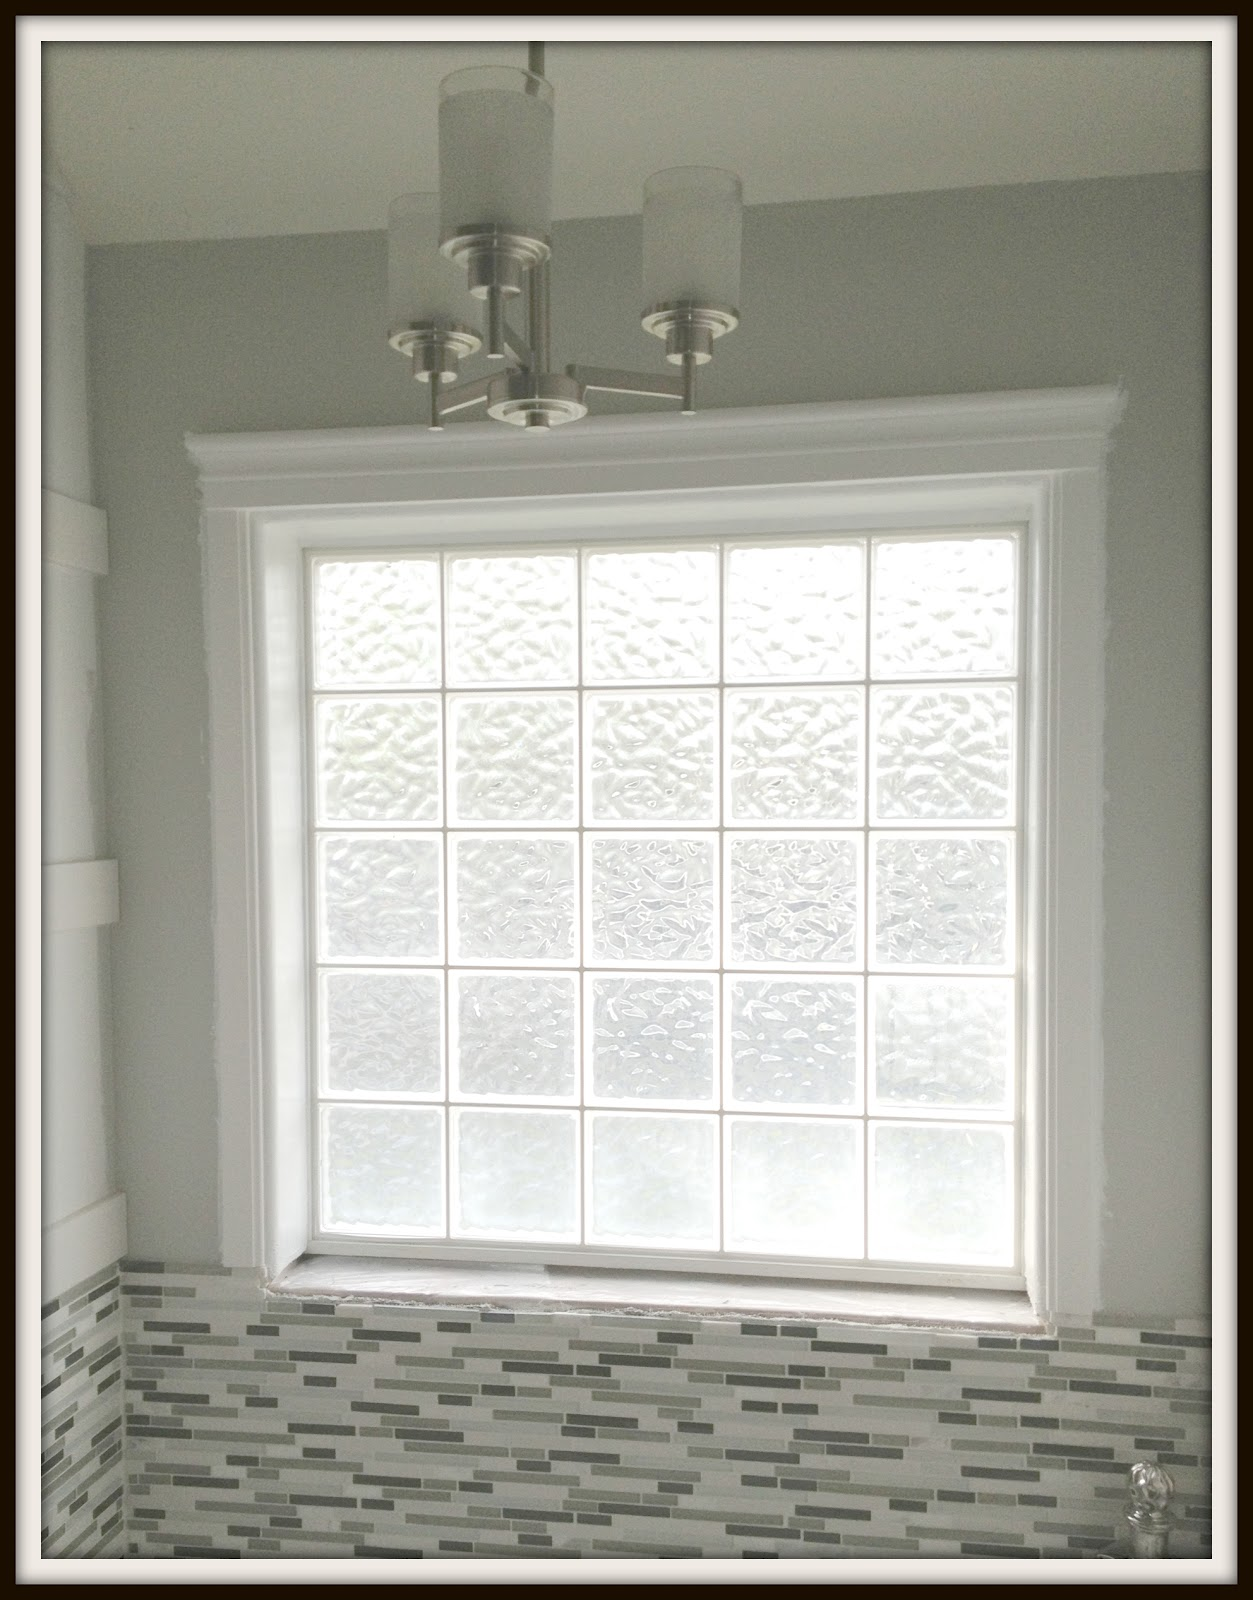 Engineering Life and Style Framing a Glass Block Bathroom WindowA Super Easy DIY Project